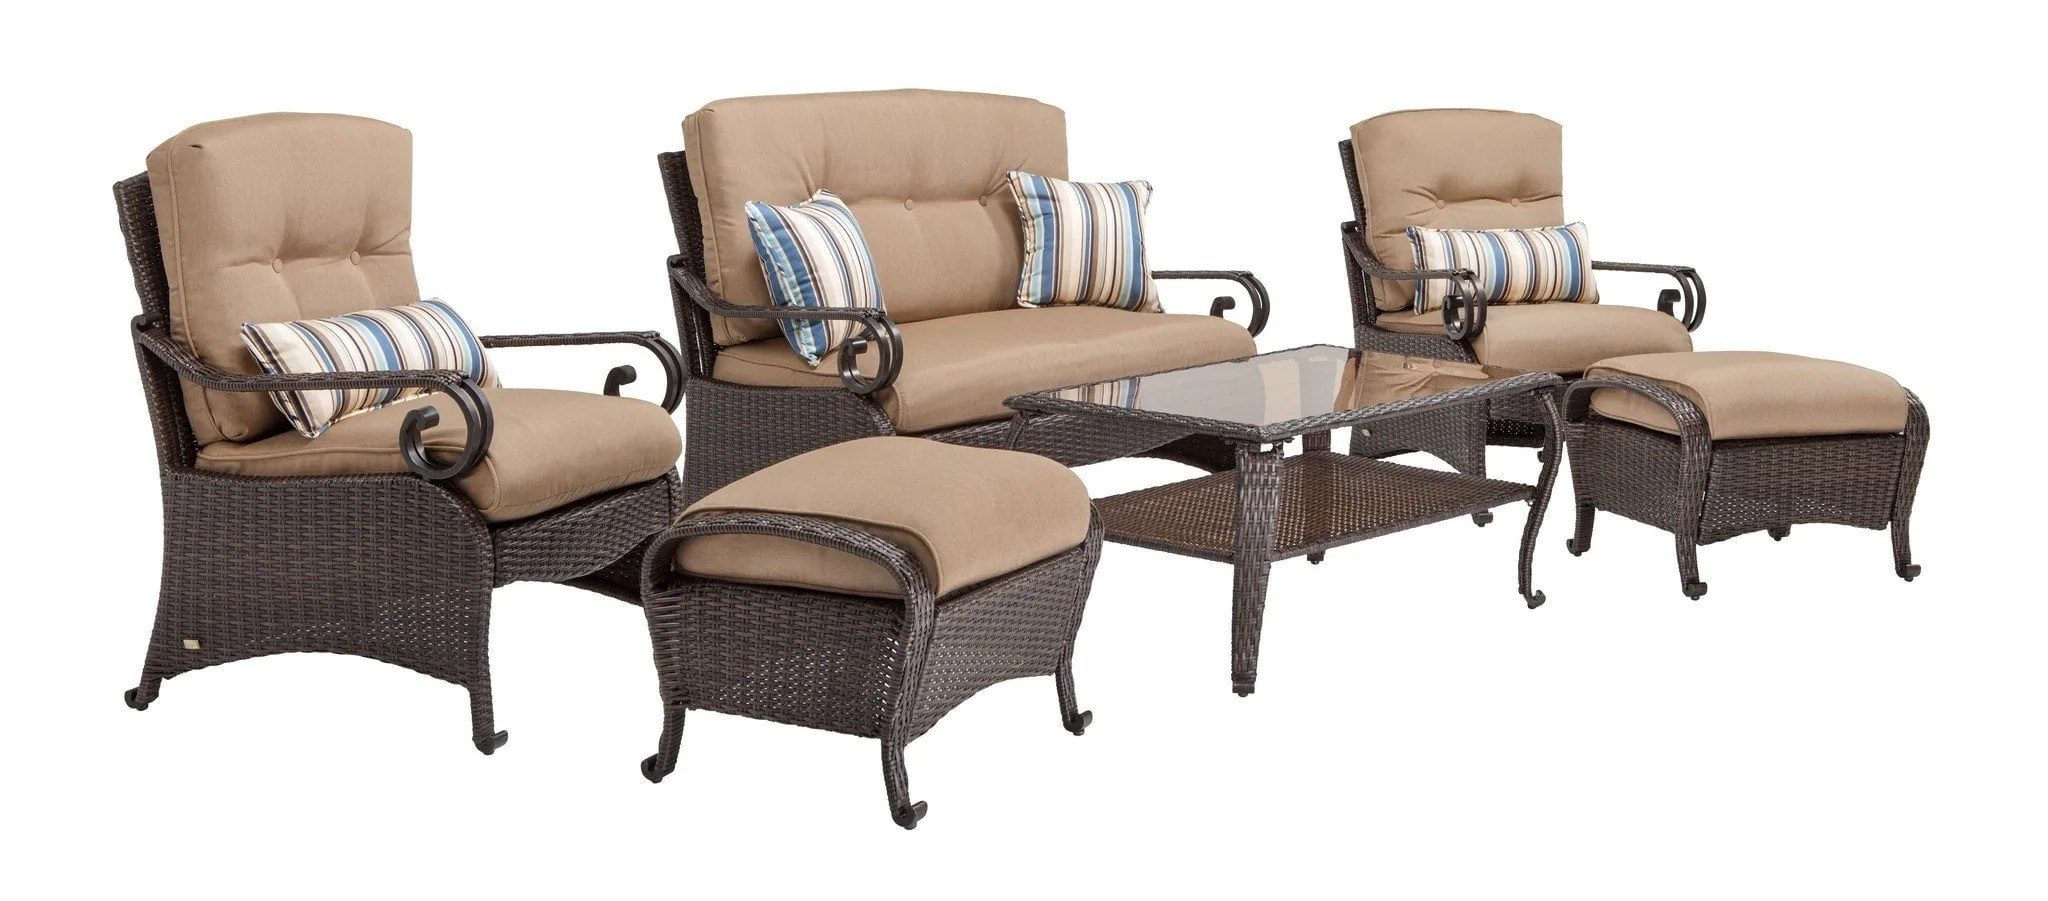 Deep Seating Patio Chairs Lake Como Deep Seating Wicker Patio Furniture Set Khaki